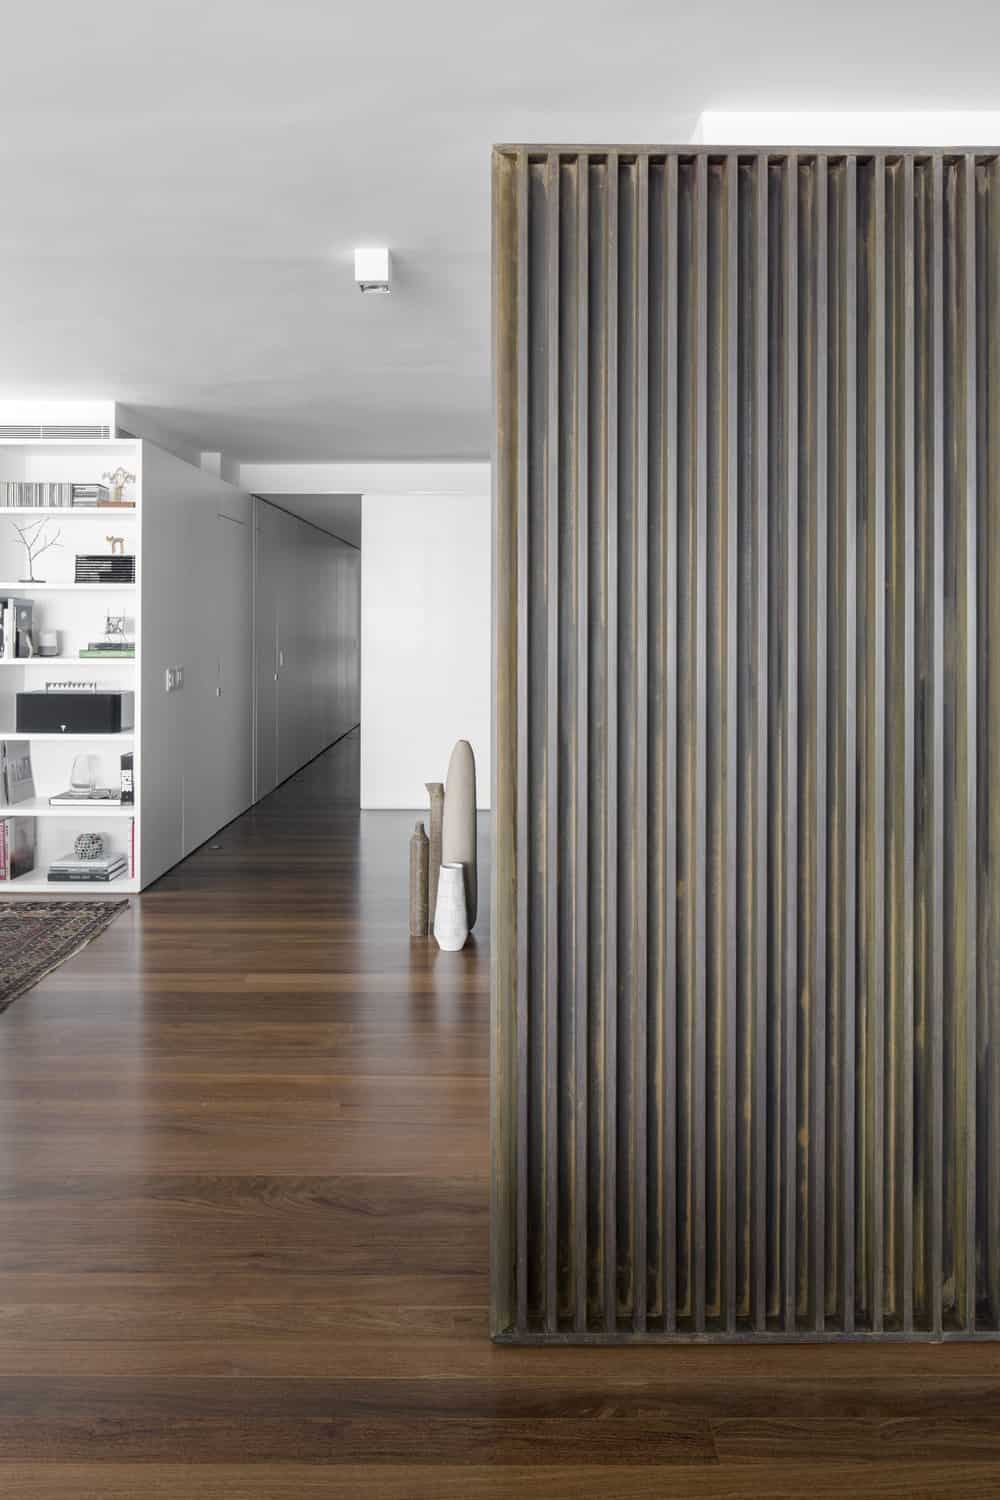 The dark wooden slatted wall that matches well with the dark hardwood flooring.